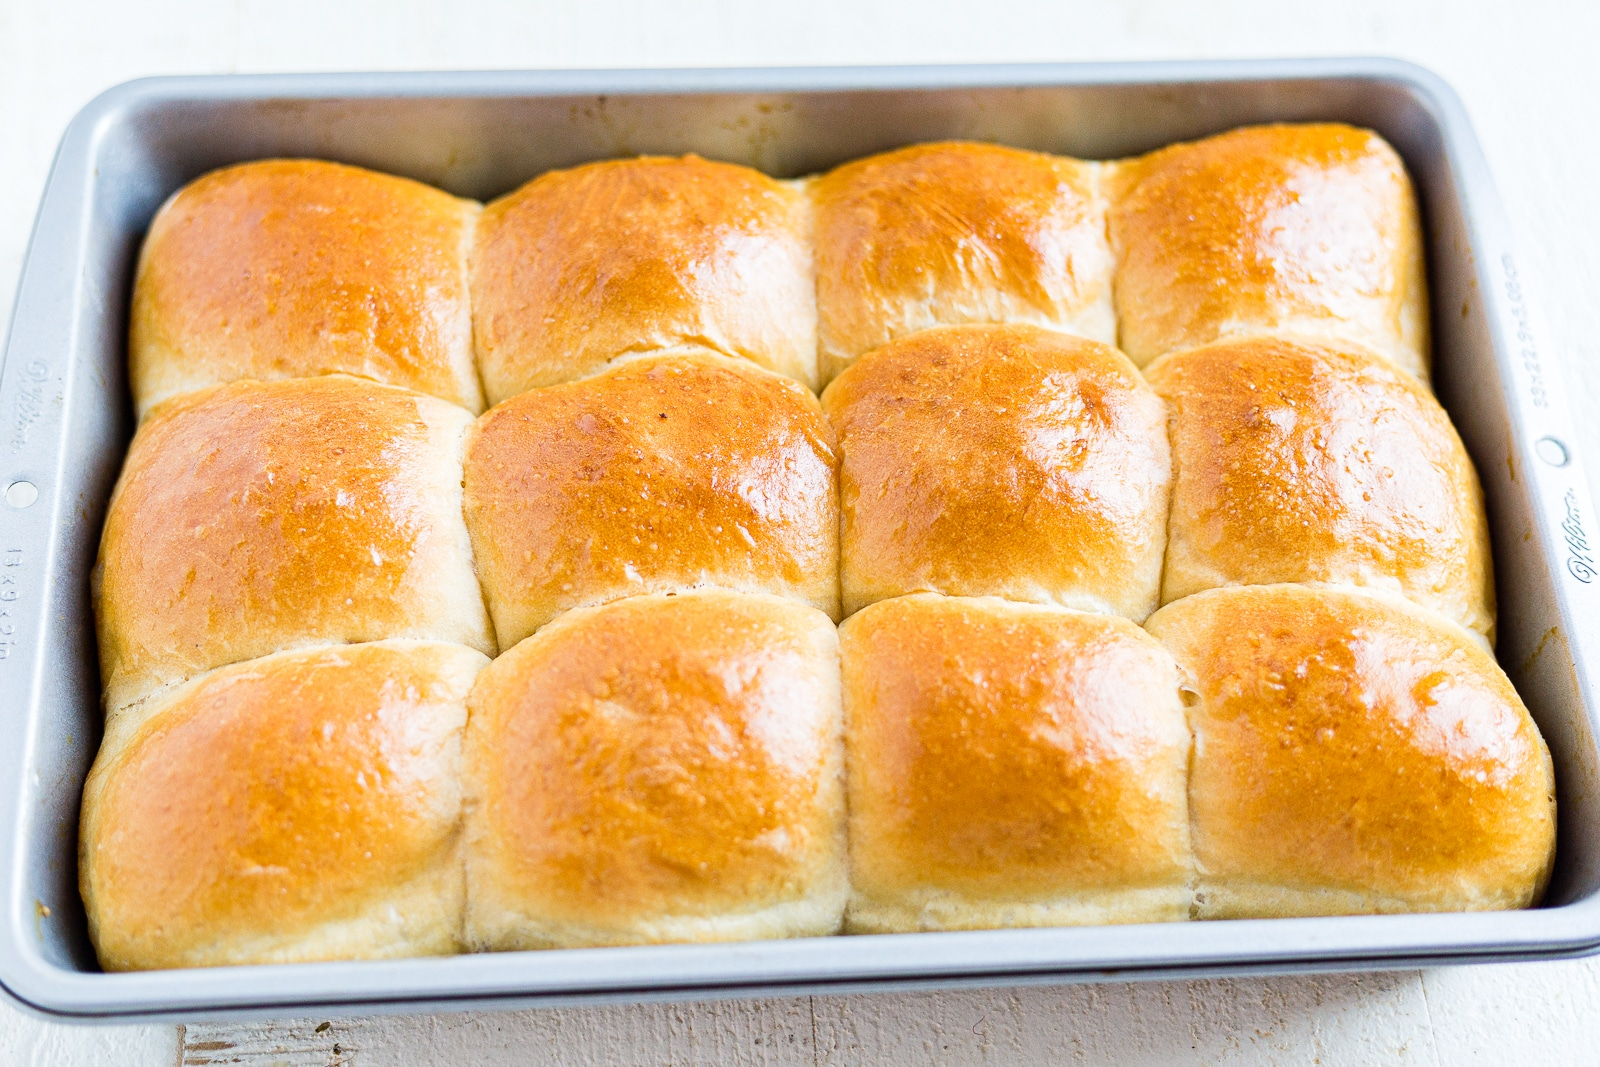 12 baked sourdough rolls in the pan with golden brown tops